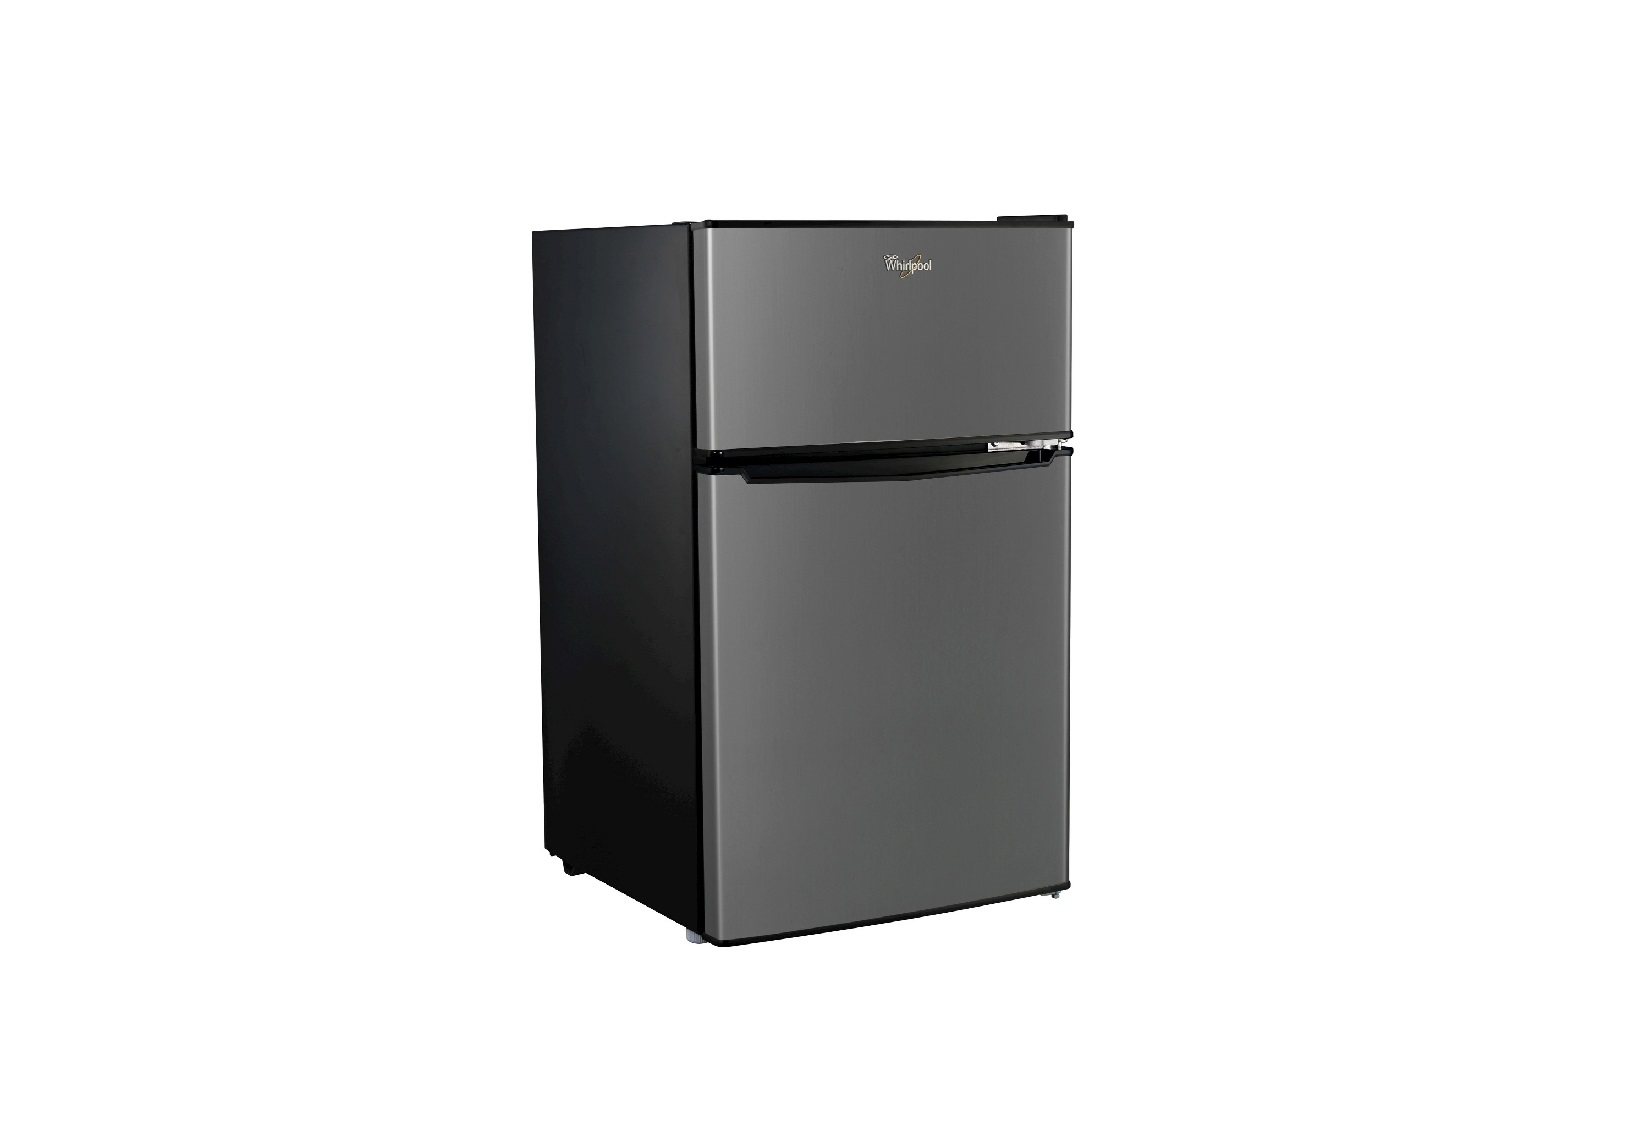 Whirlpool 31cu ft Mini Refrigerator Stainless Steel for 13999